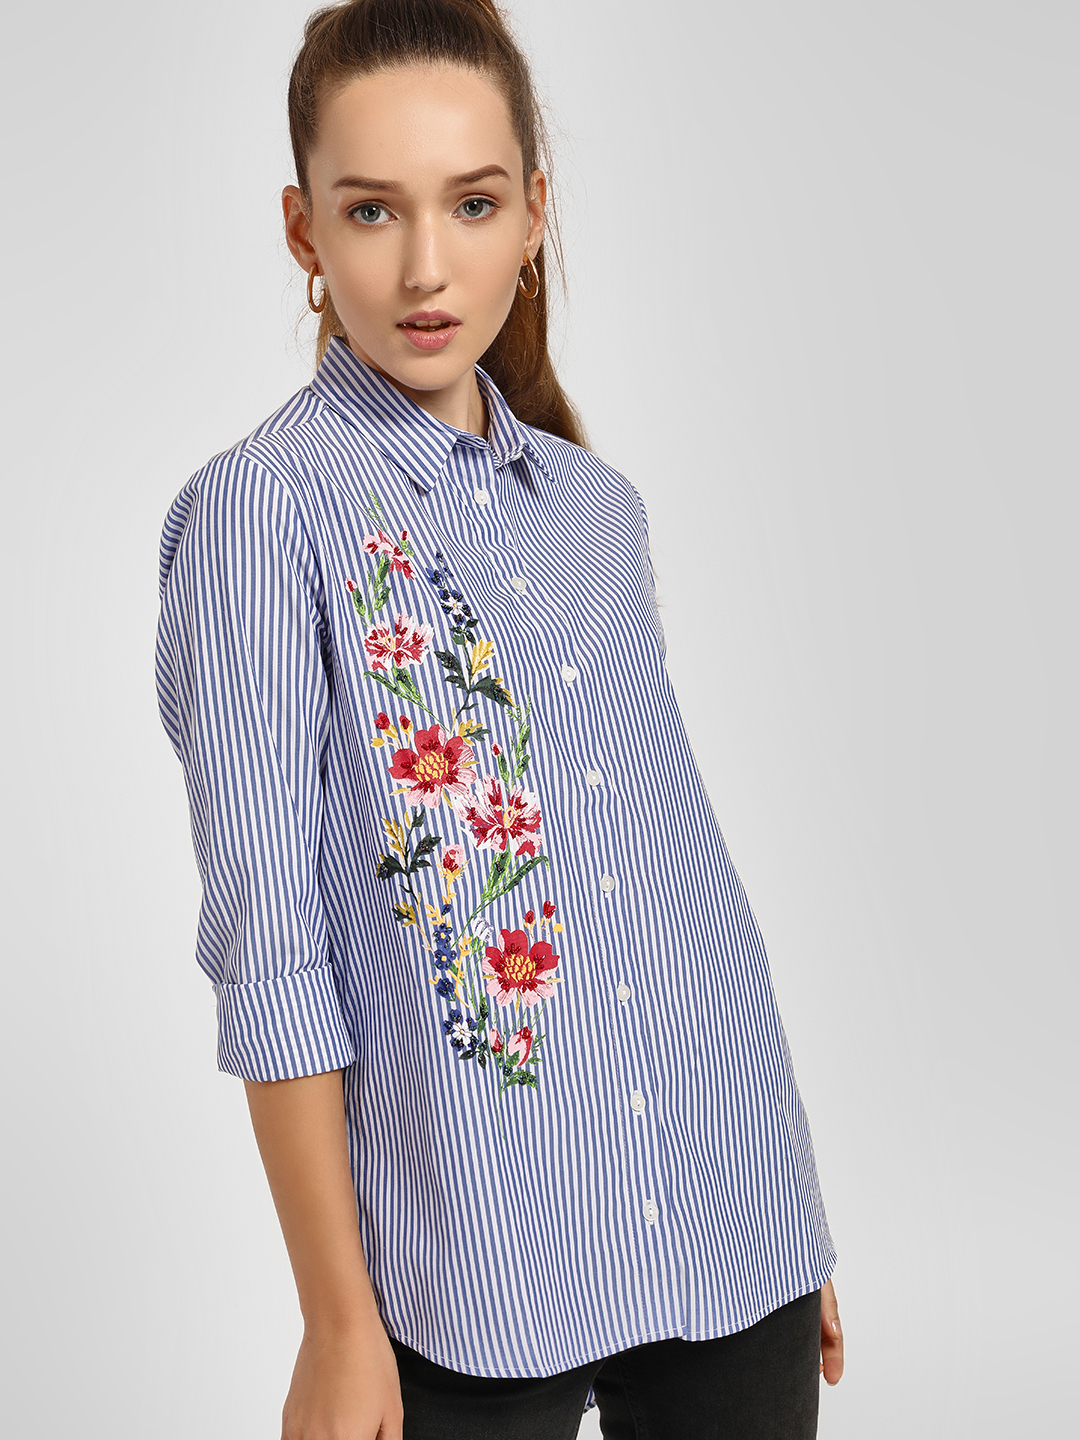 LC Waikiki Blue Bead Embroidered Floral Print Striped Shirt 1